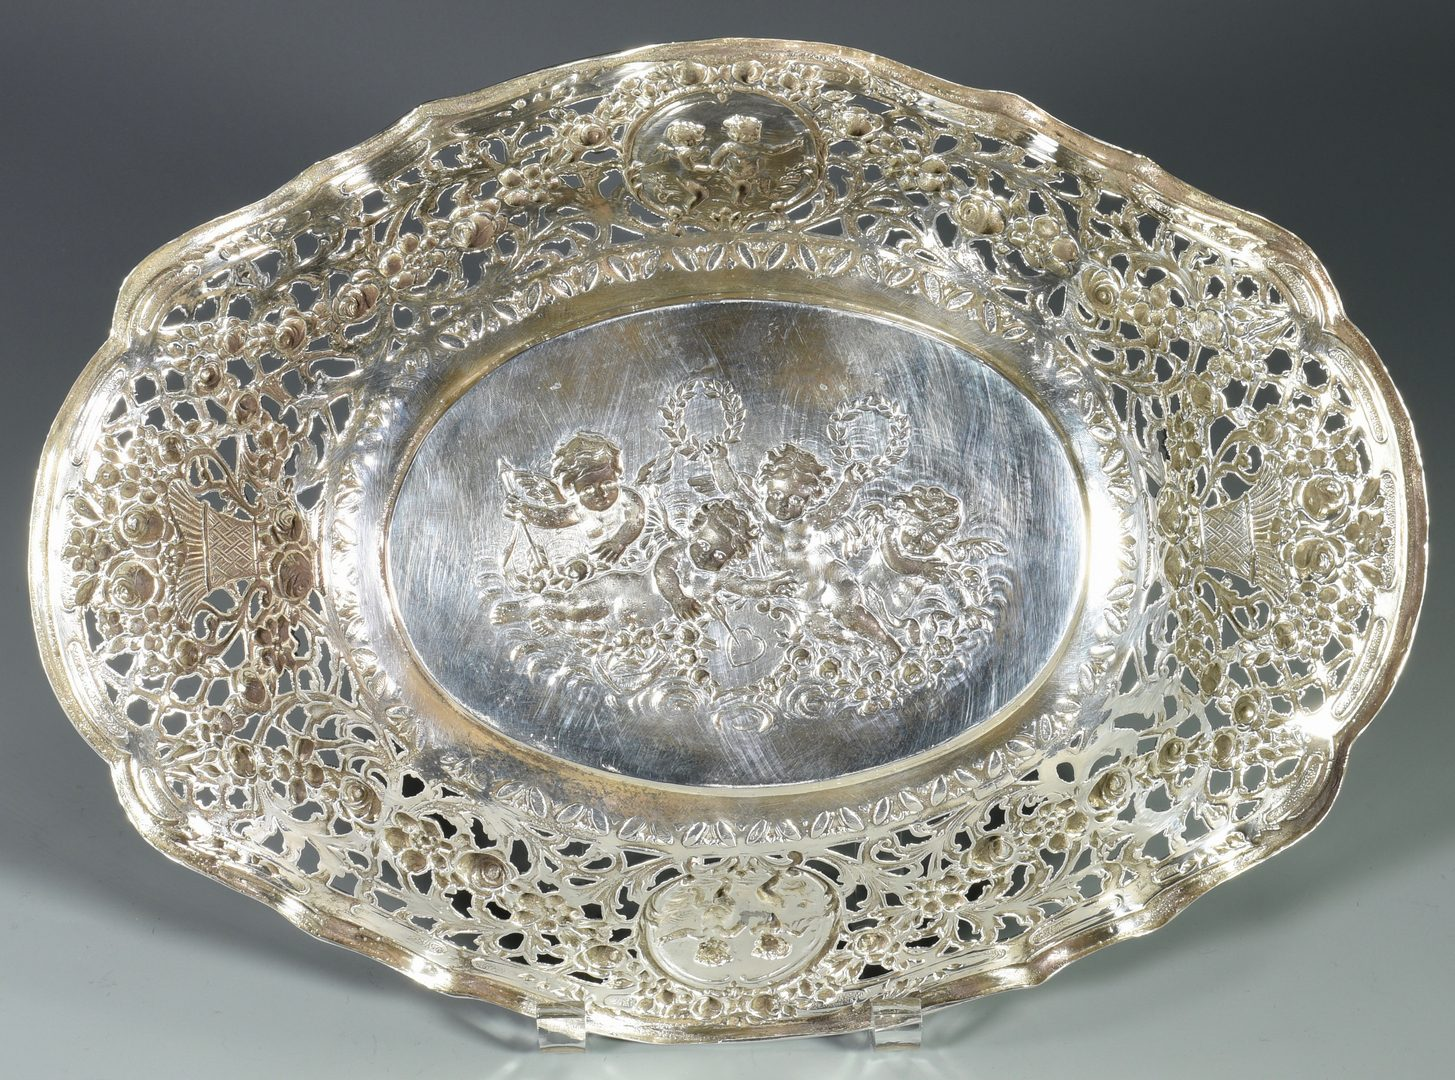 Lot 29: Sterling Silver Center Bowl with Cupids